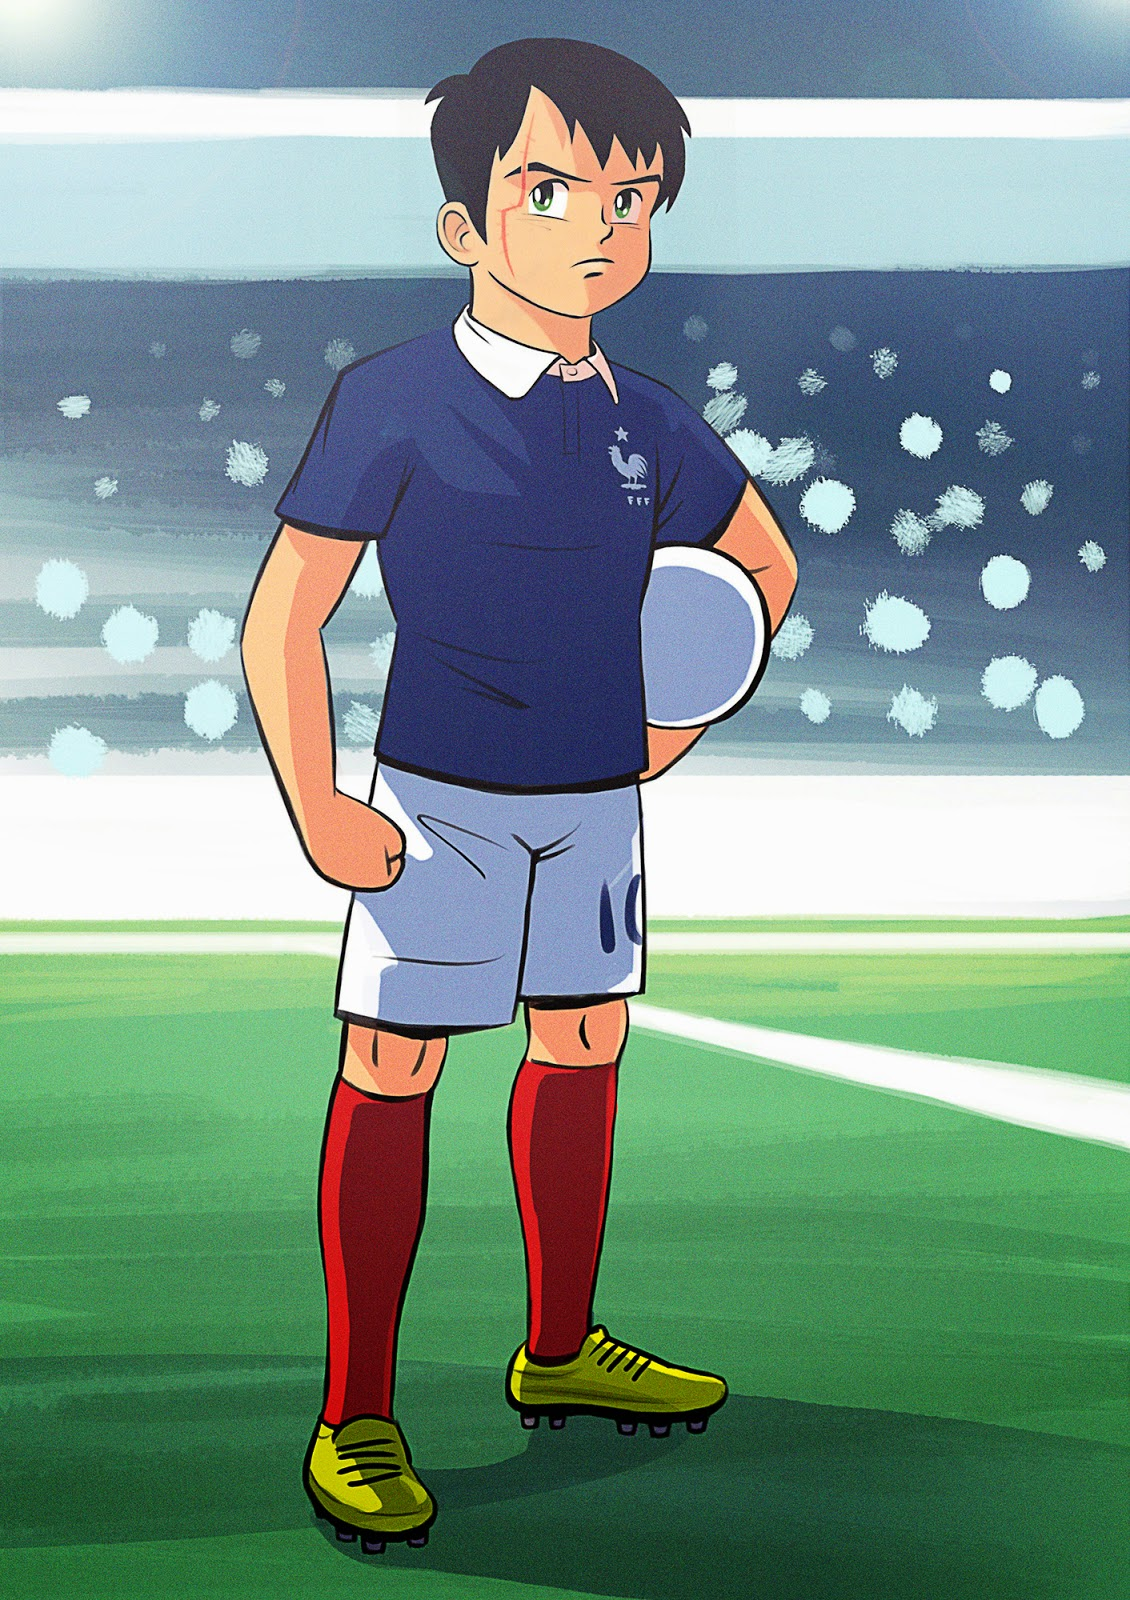 fifa_2014_kids_2characters_hero_france_small.jpg